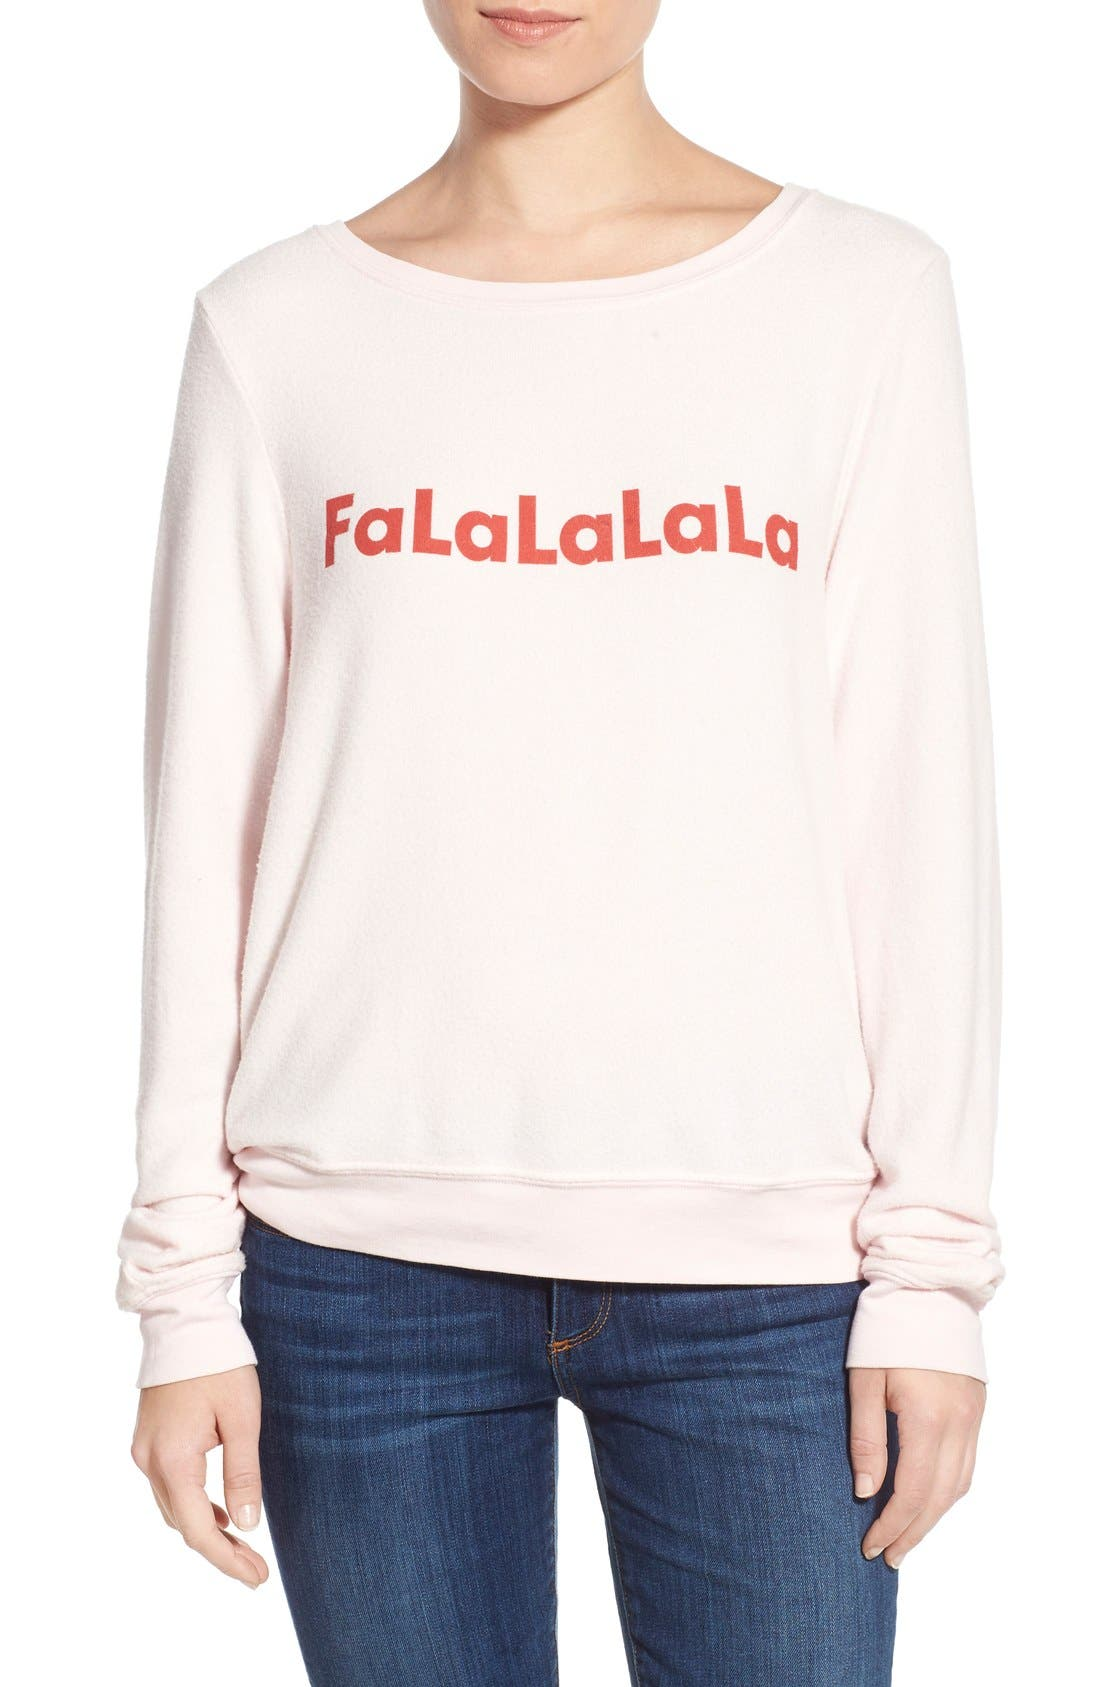 Alternate Image 1 Selected - Wildfox 'Baggy Beach Jumper - FaLaLaLa' Pullover